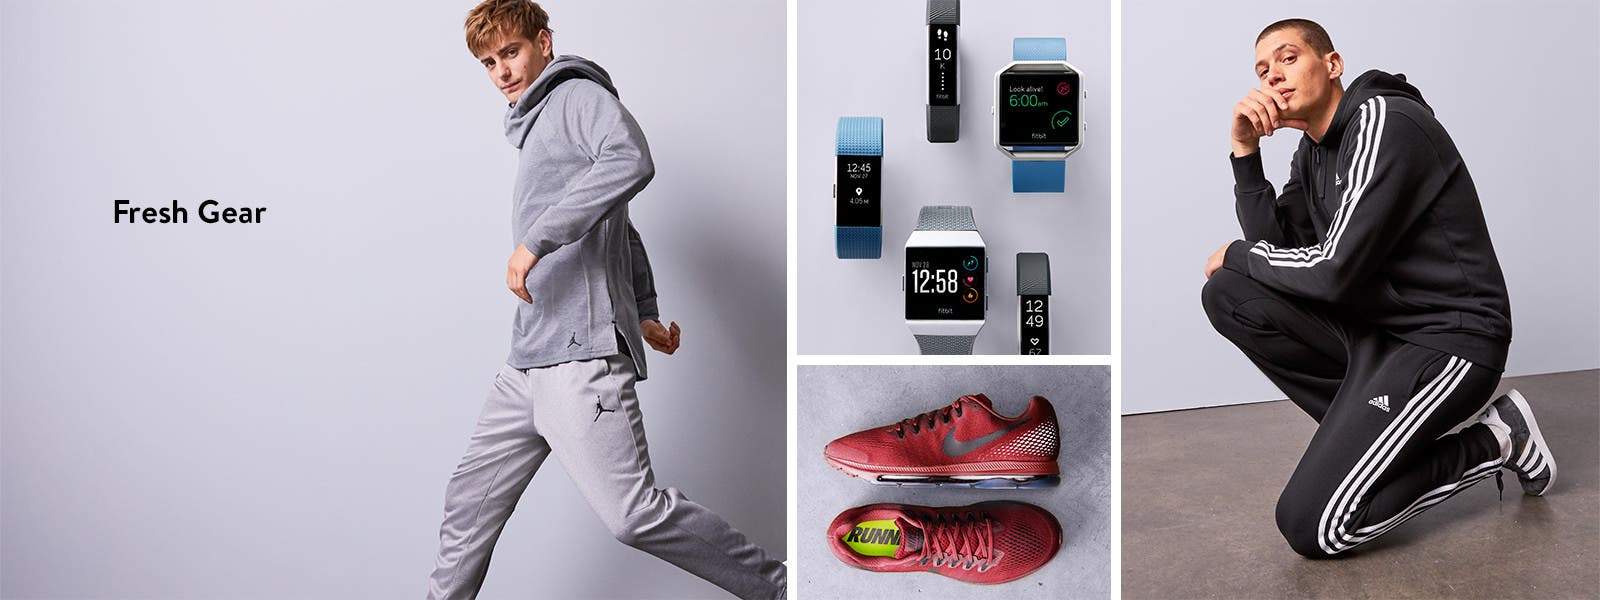 Fresh gear: men's workout clothes, shoes and accessories.